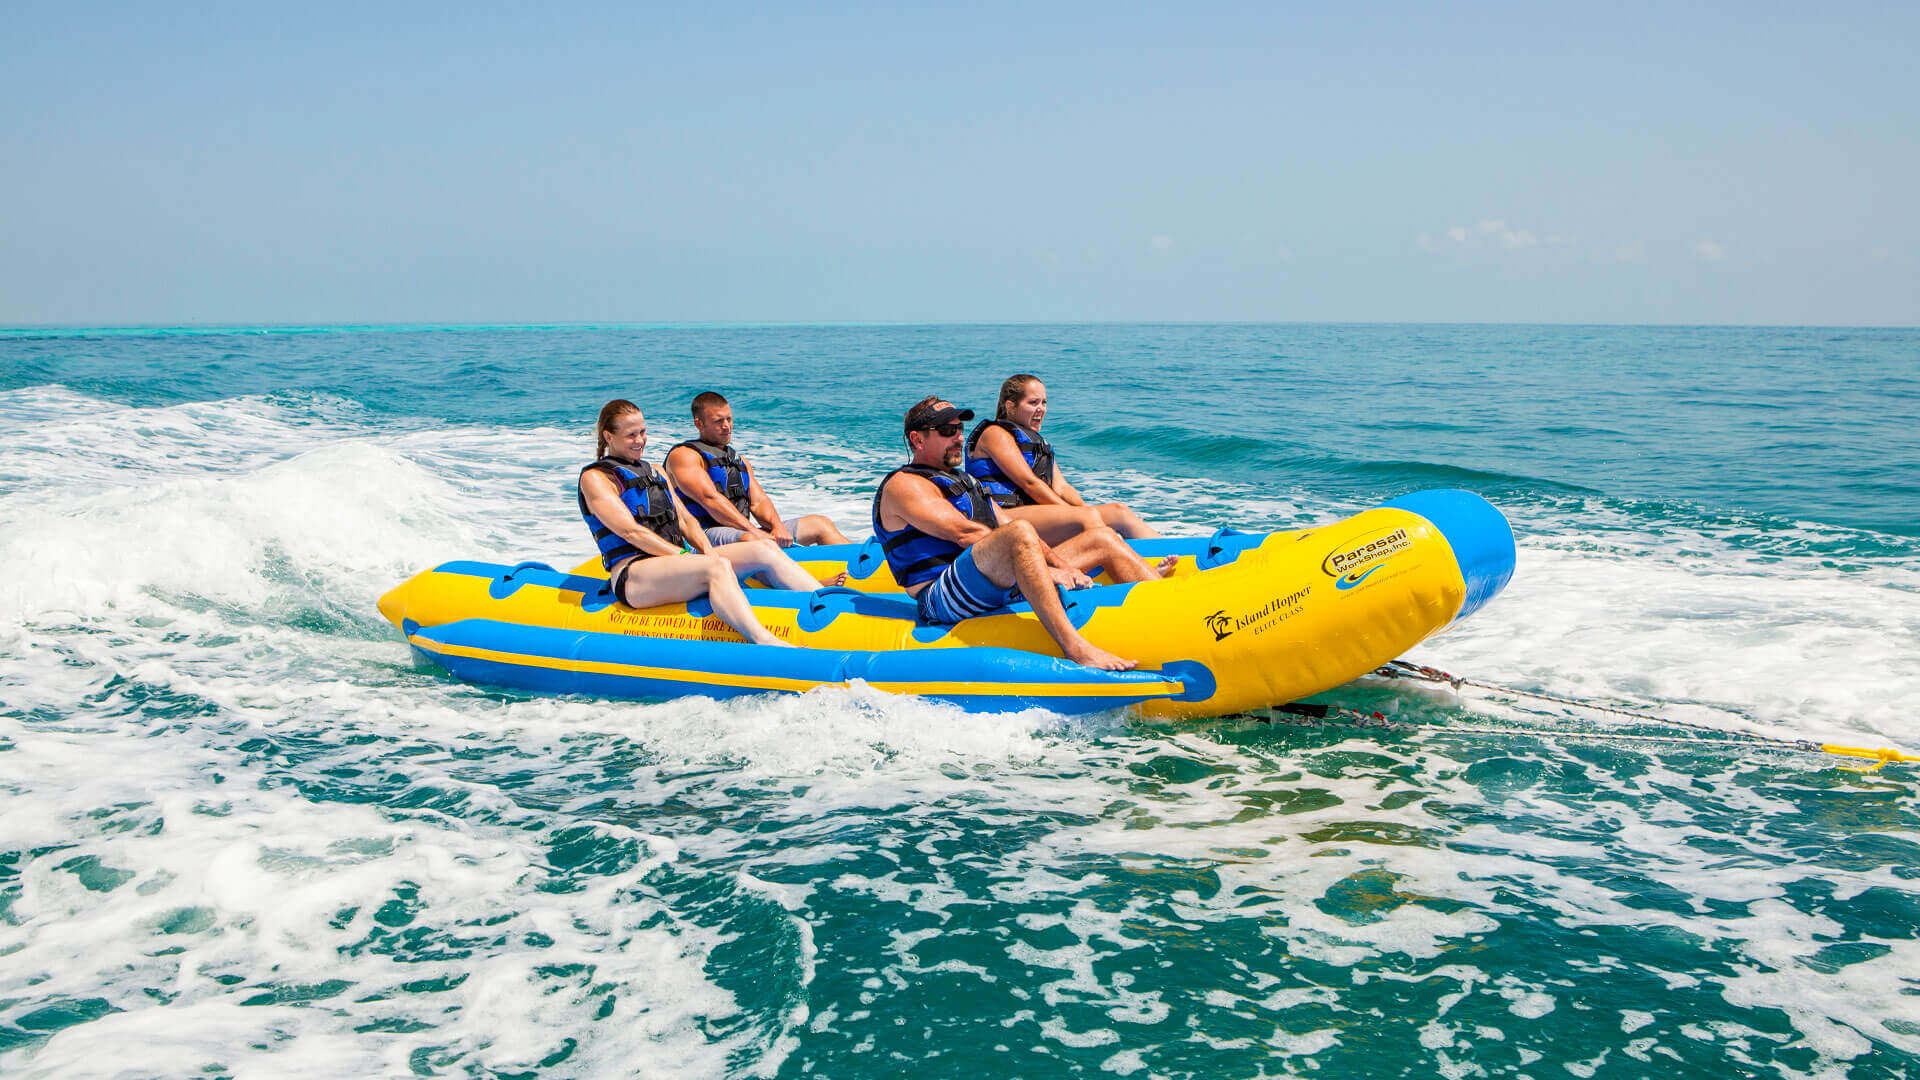 Group of four people enjoy a Fury banana boat ride in Key West